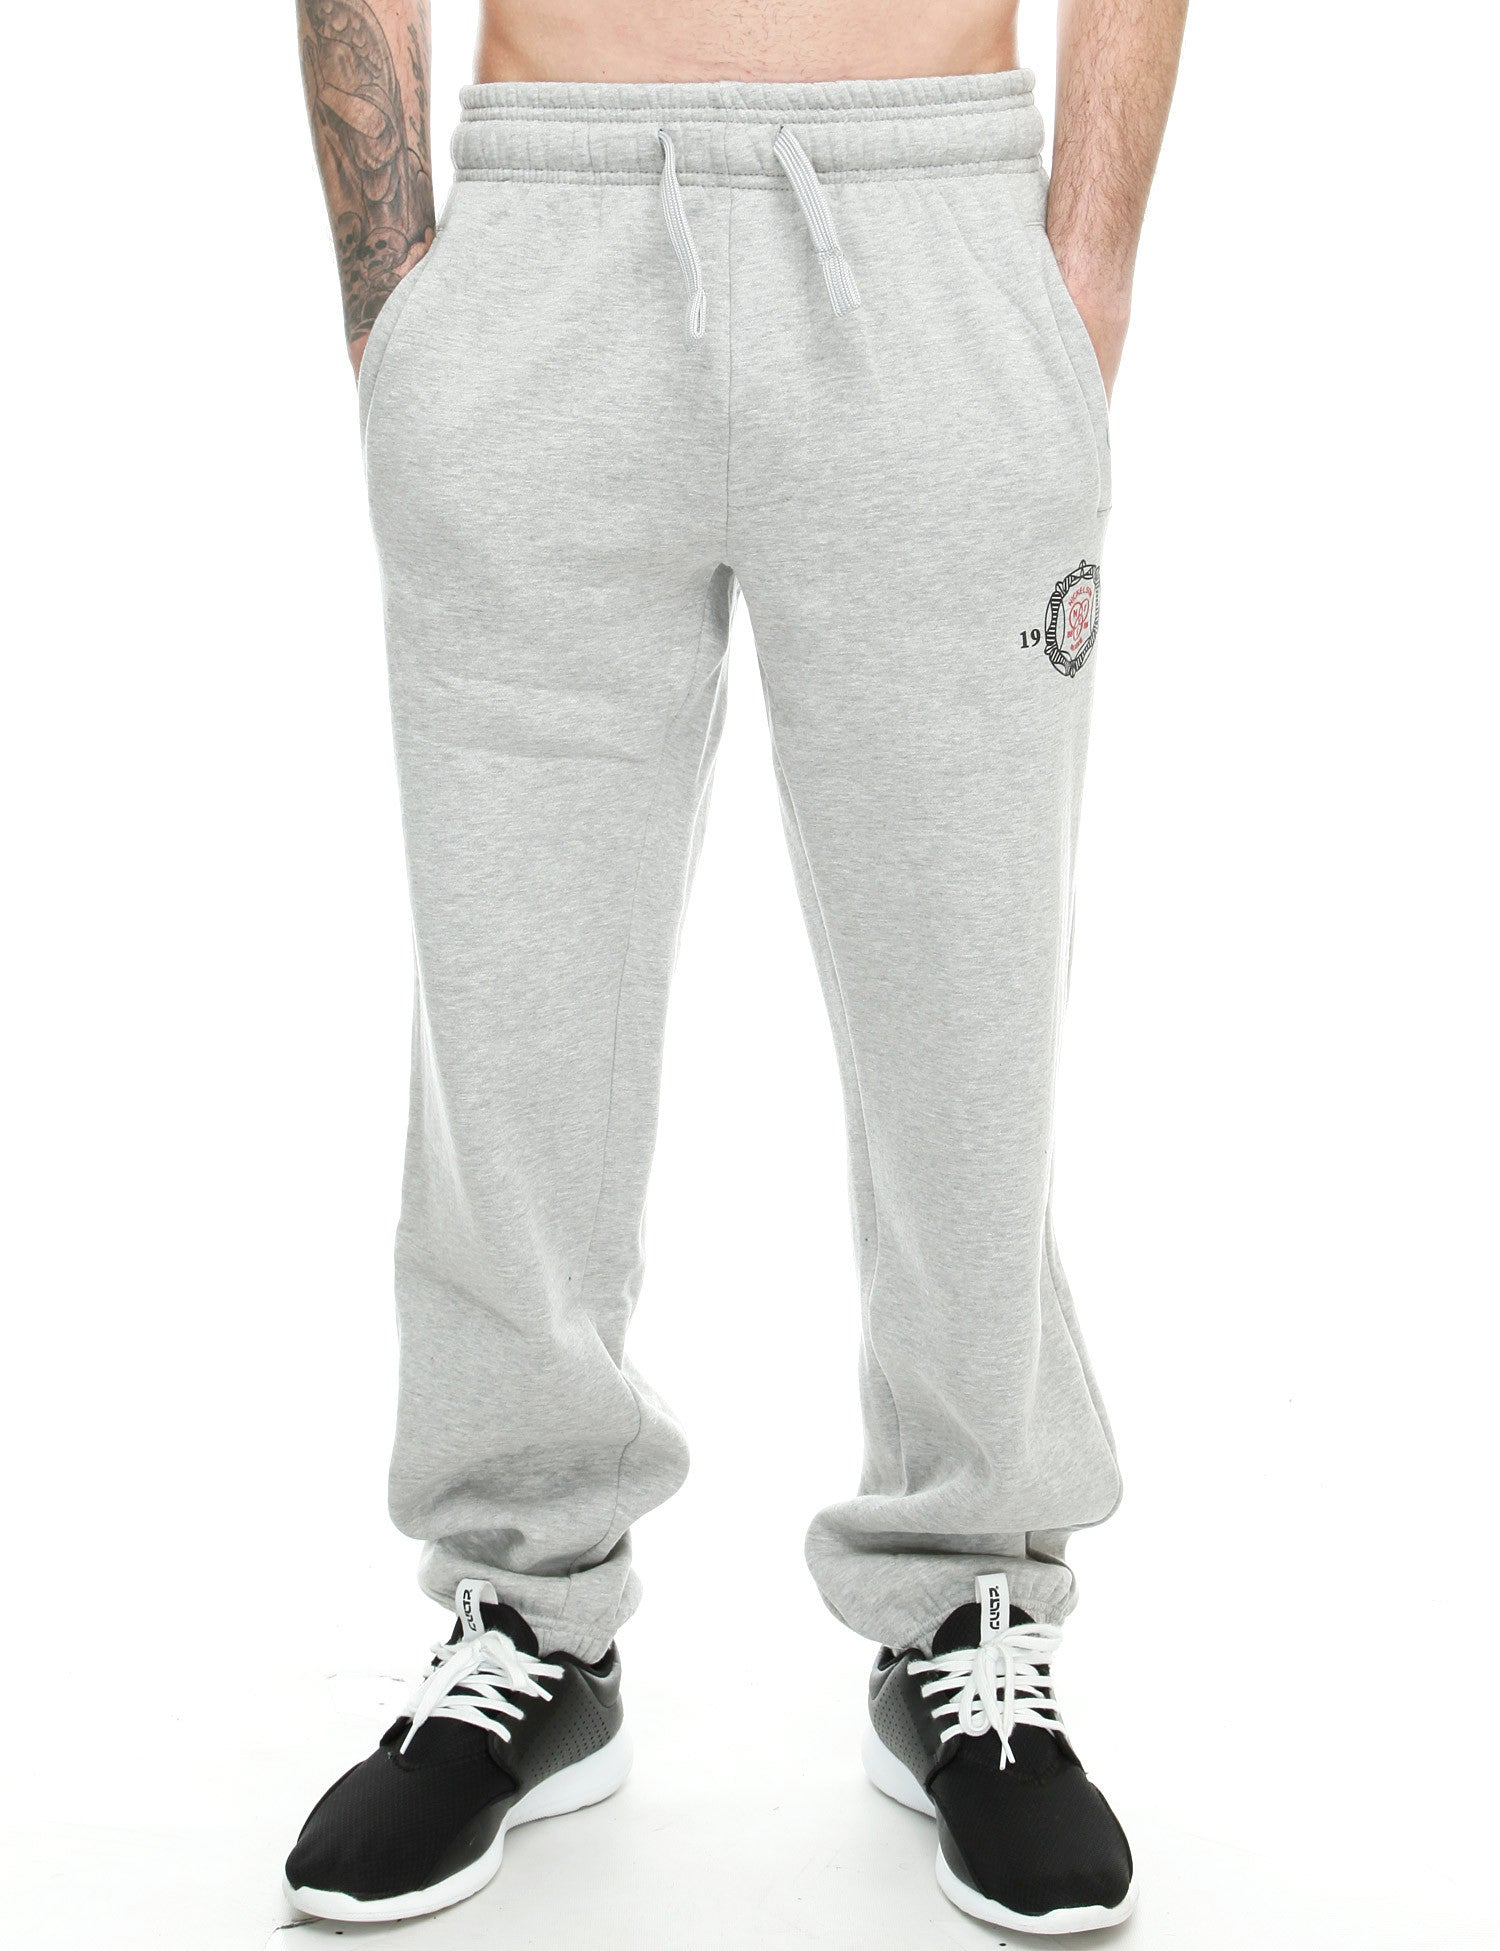 Nickleson Brentwood Sweatpant RSK00035 Grey